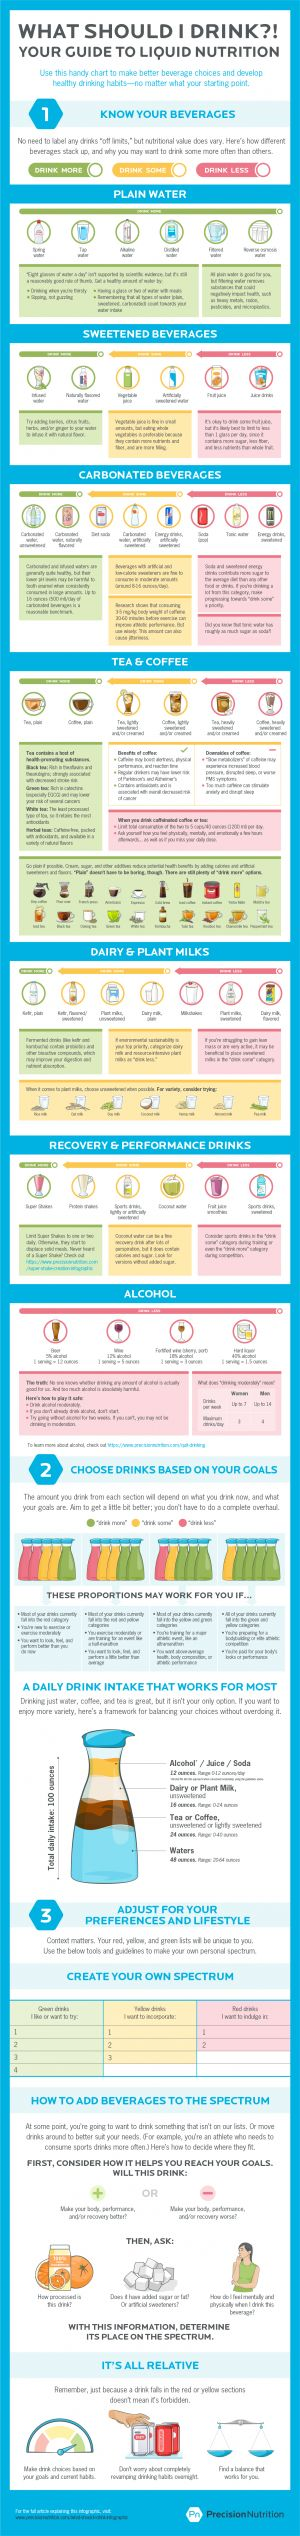 'What should I drink?!' Your complete guide to liquid nutrition